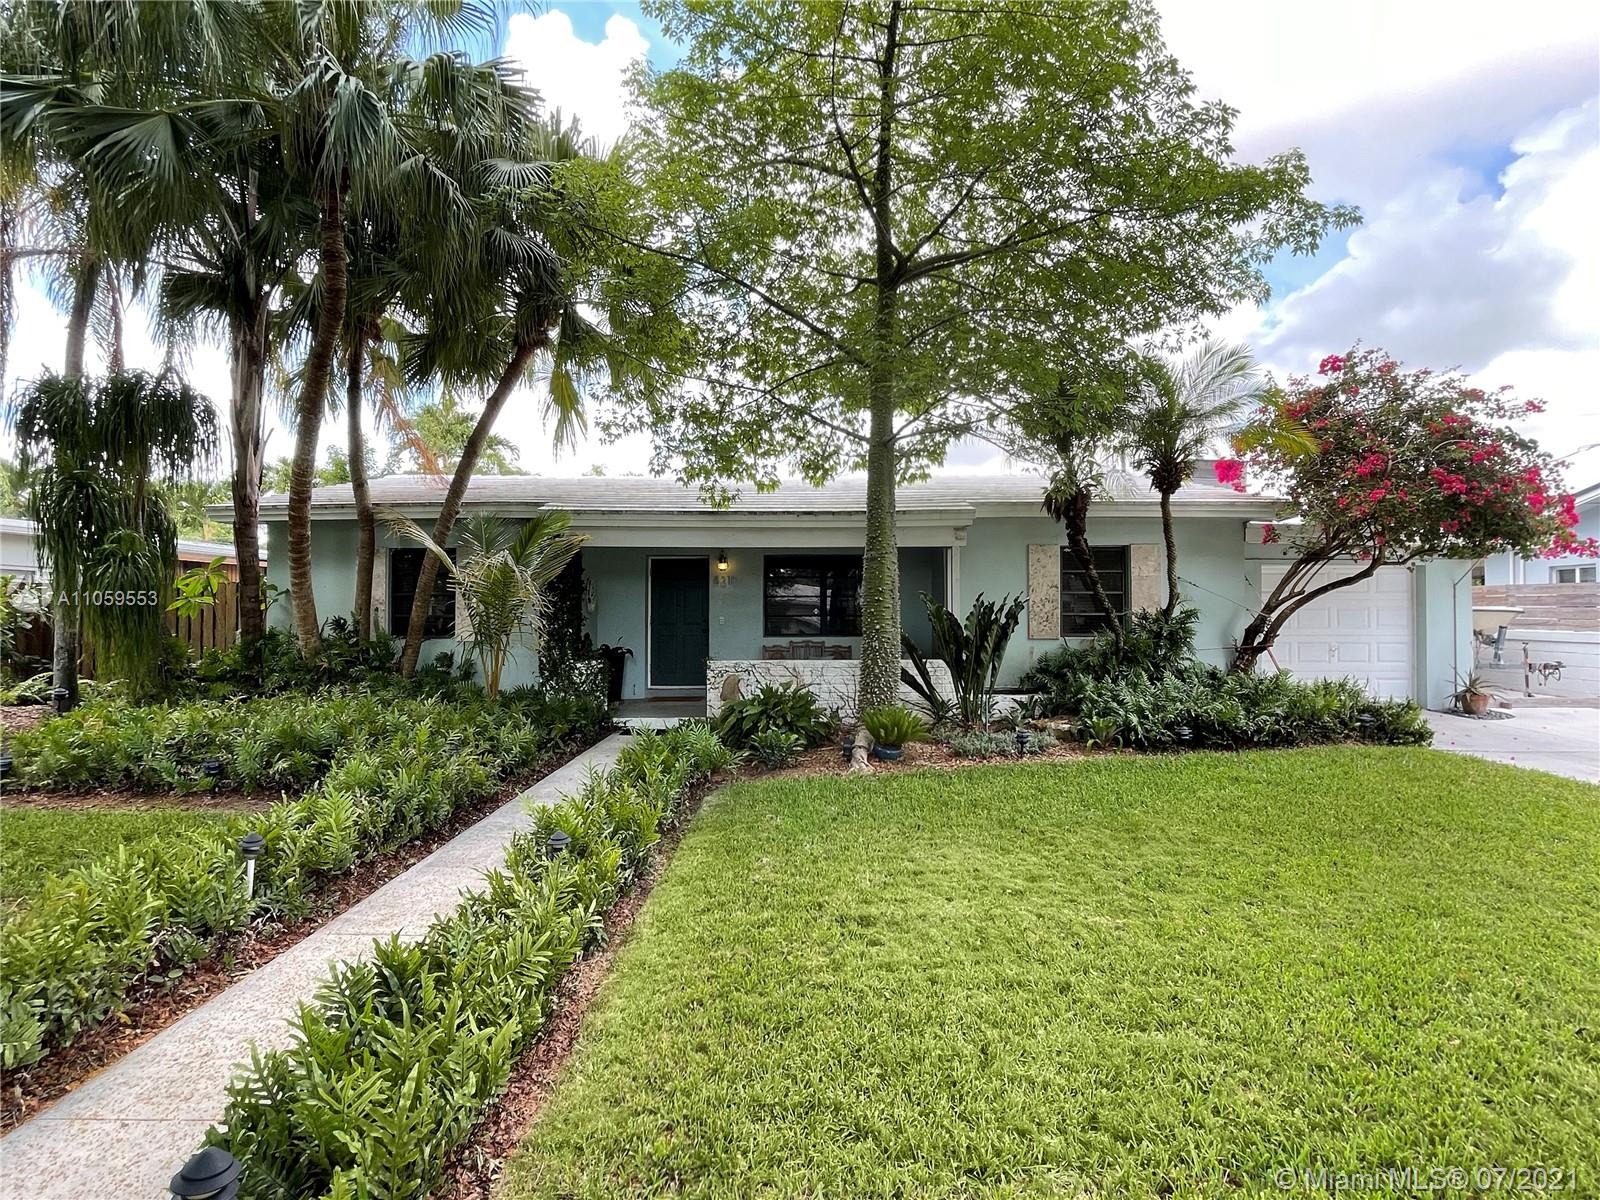 8310 SW 62nd Ct, South Miami, Florida 33143